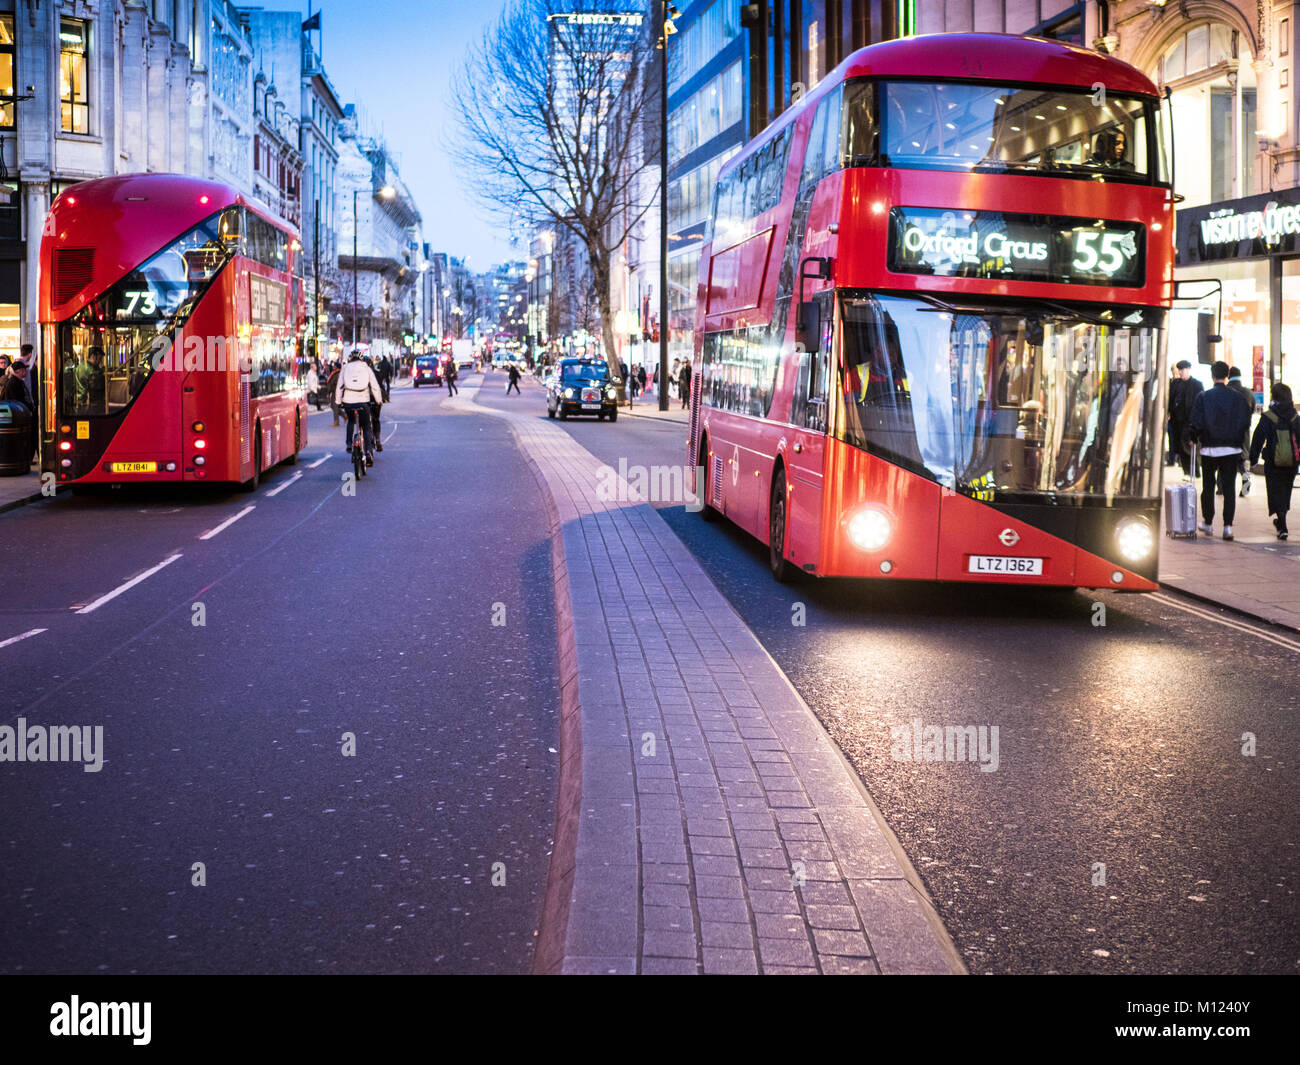 London Oxford Street Buses - two new Routemaster buses on Oxford St, Londons main shopping street at dusk - Stock Image